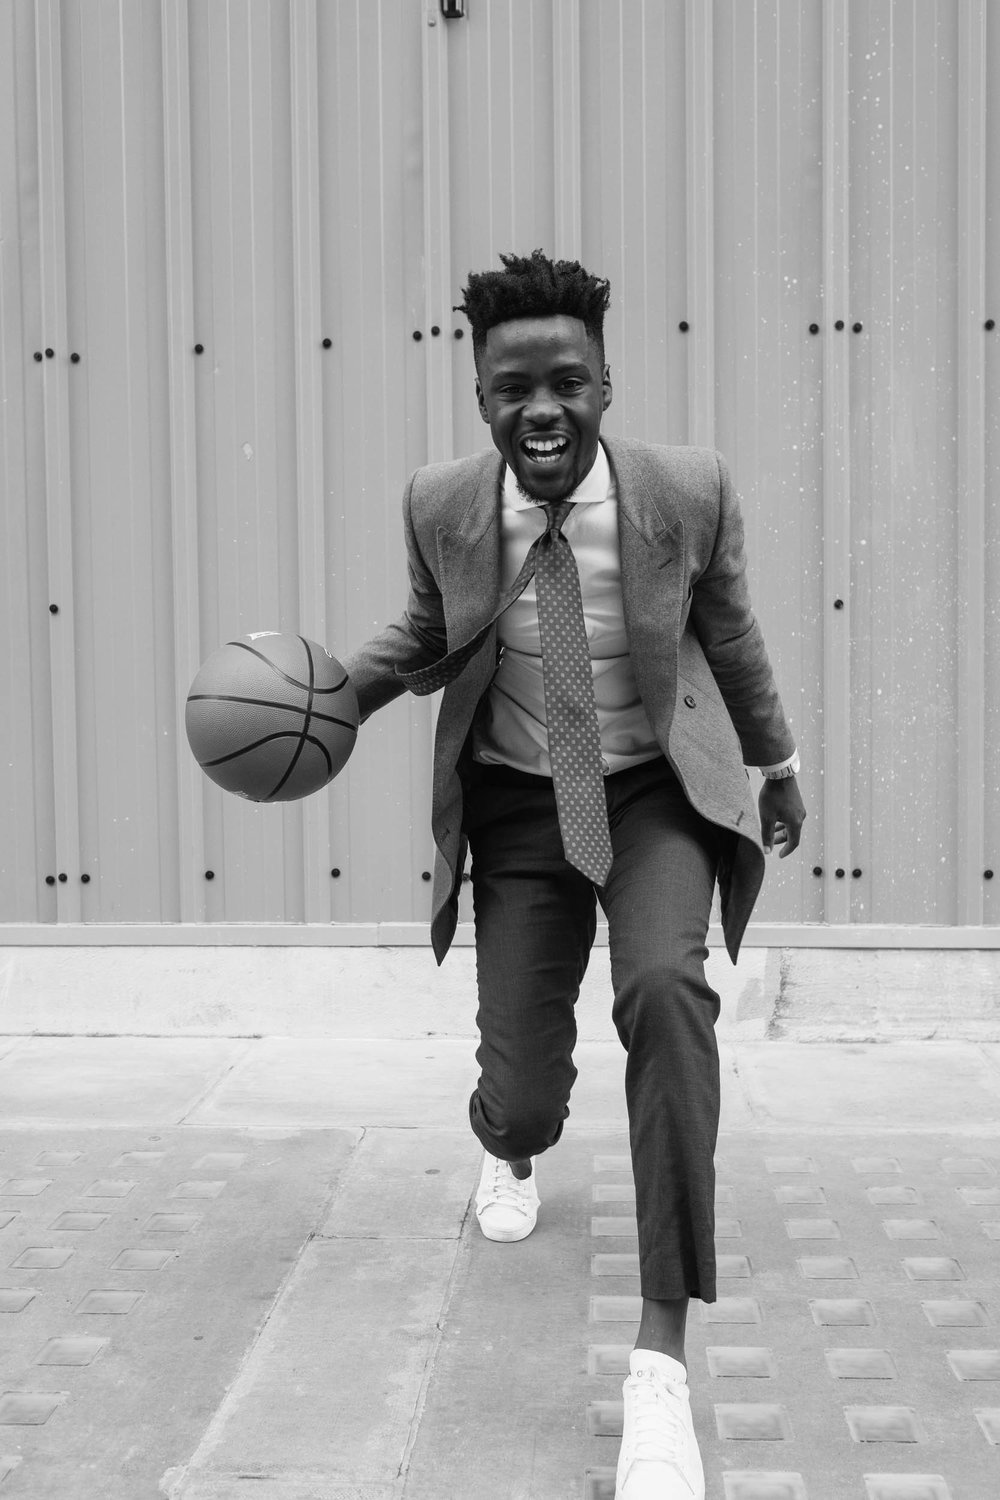 Javanandre-dribbling-basketball-whilst-wearing-suit-on-oxford-st